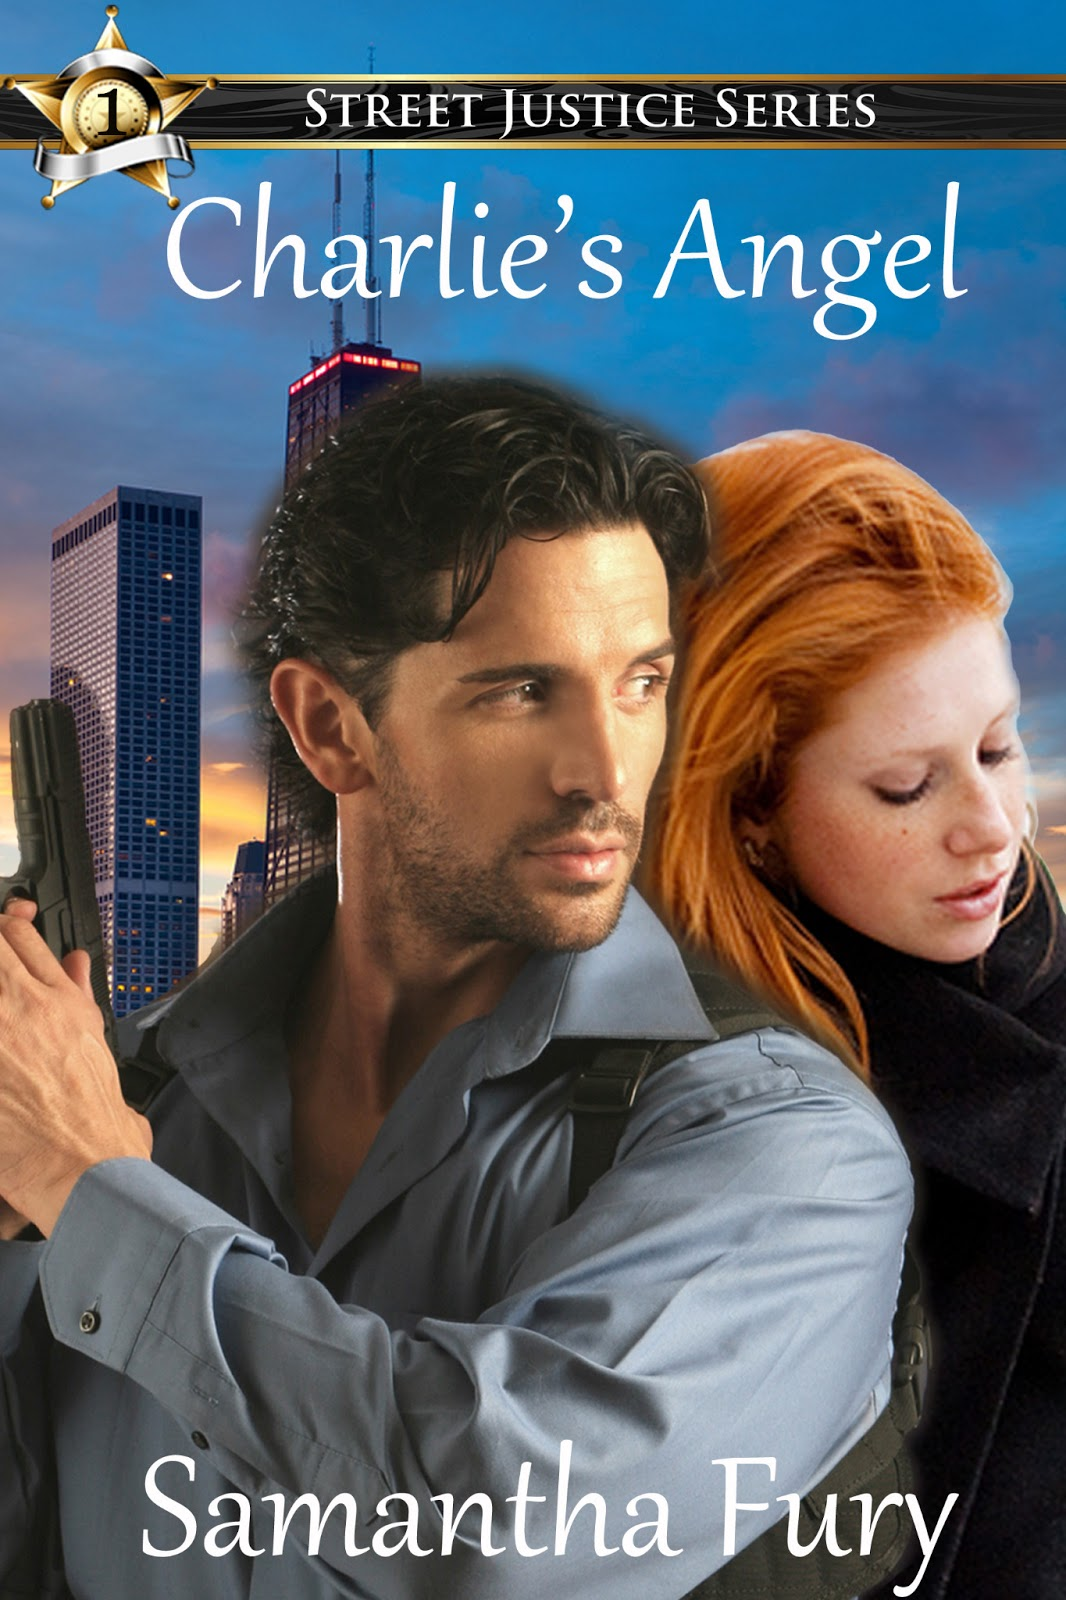 http://www.amazon.com/Charlies-Angel-Street-Justice-Book-ebook/dp/B0041844HM/ref=pd_sim_kstore_8?ie=UTF8&refRID=0VF0JVPN0315KMDSBP9K